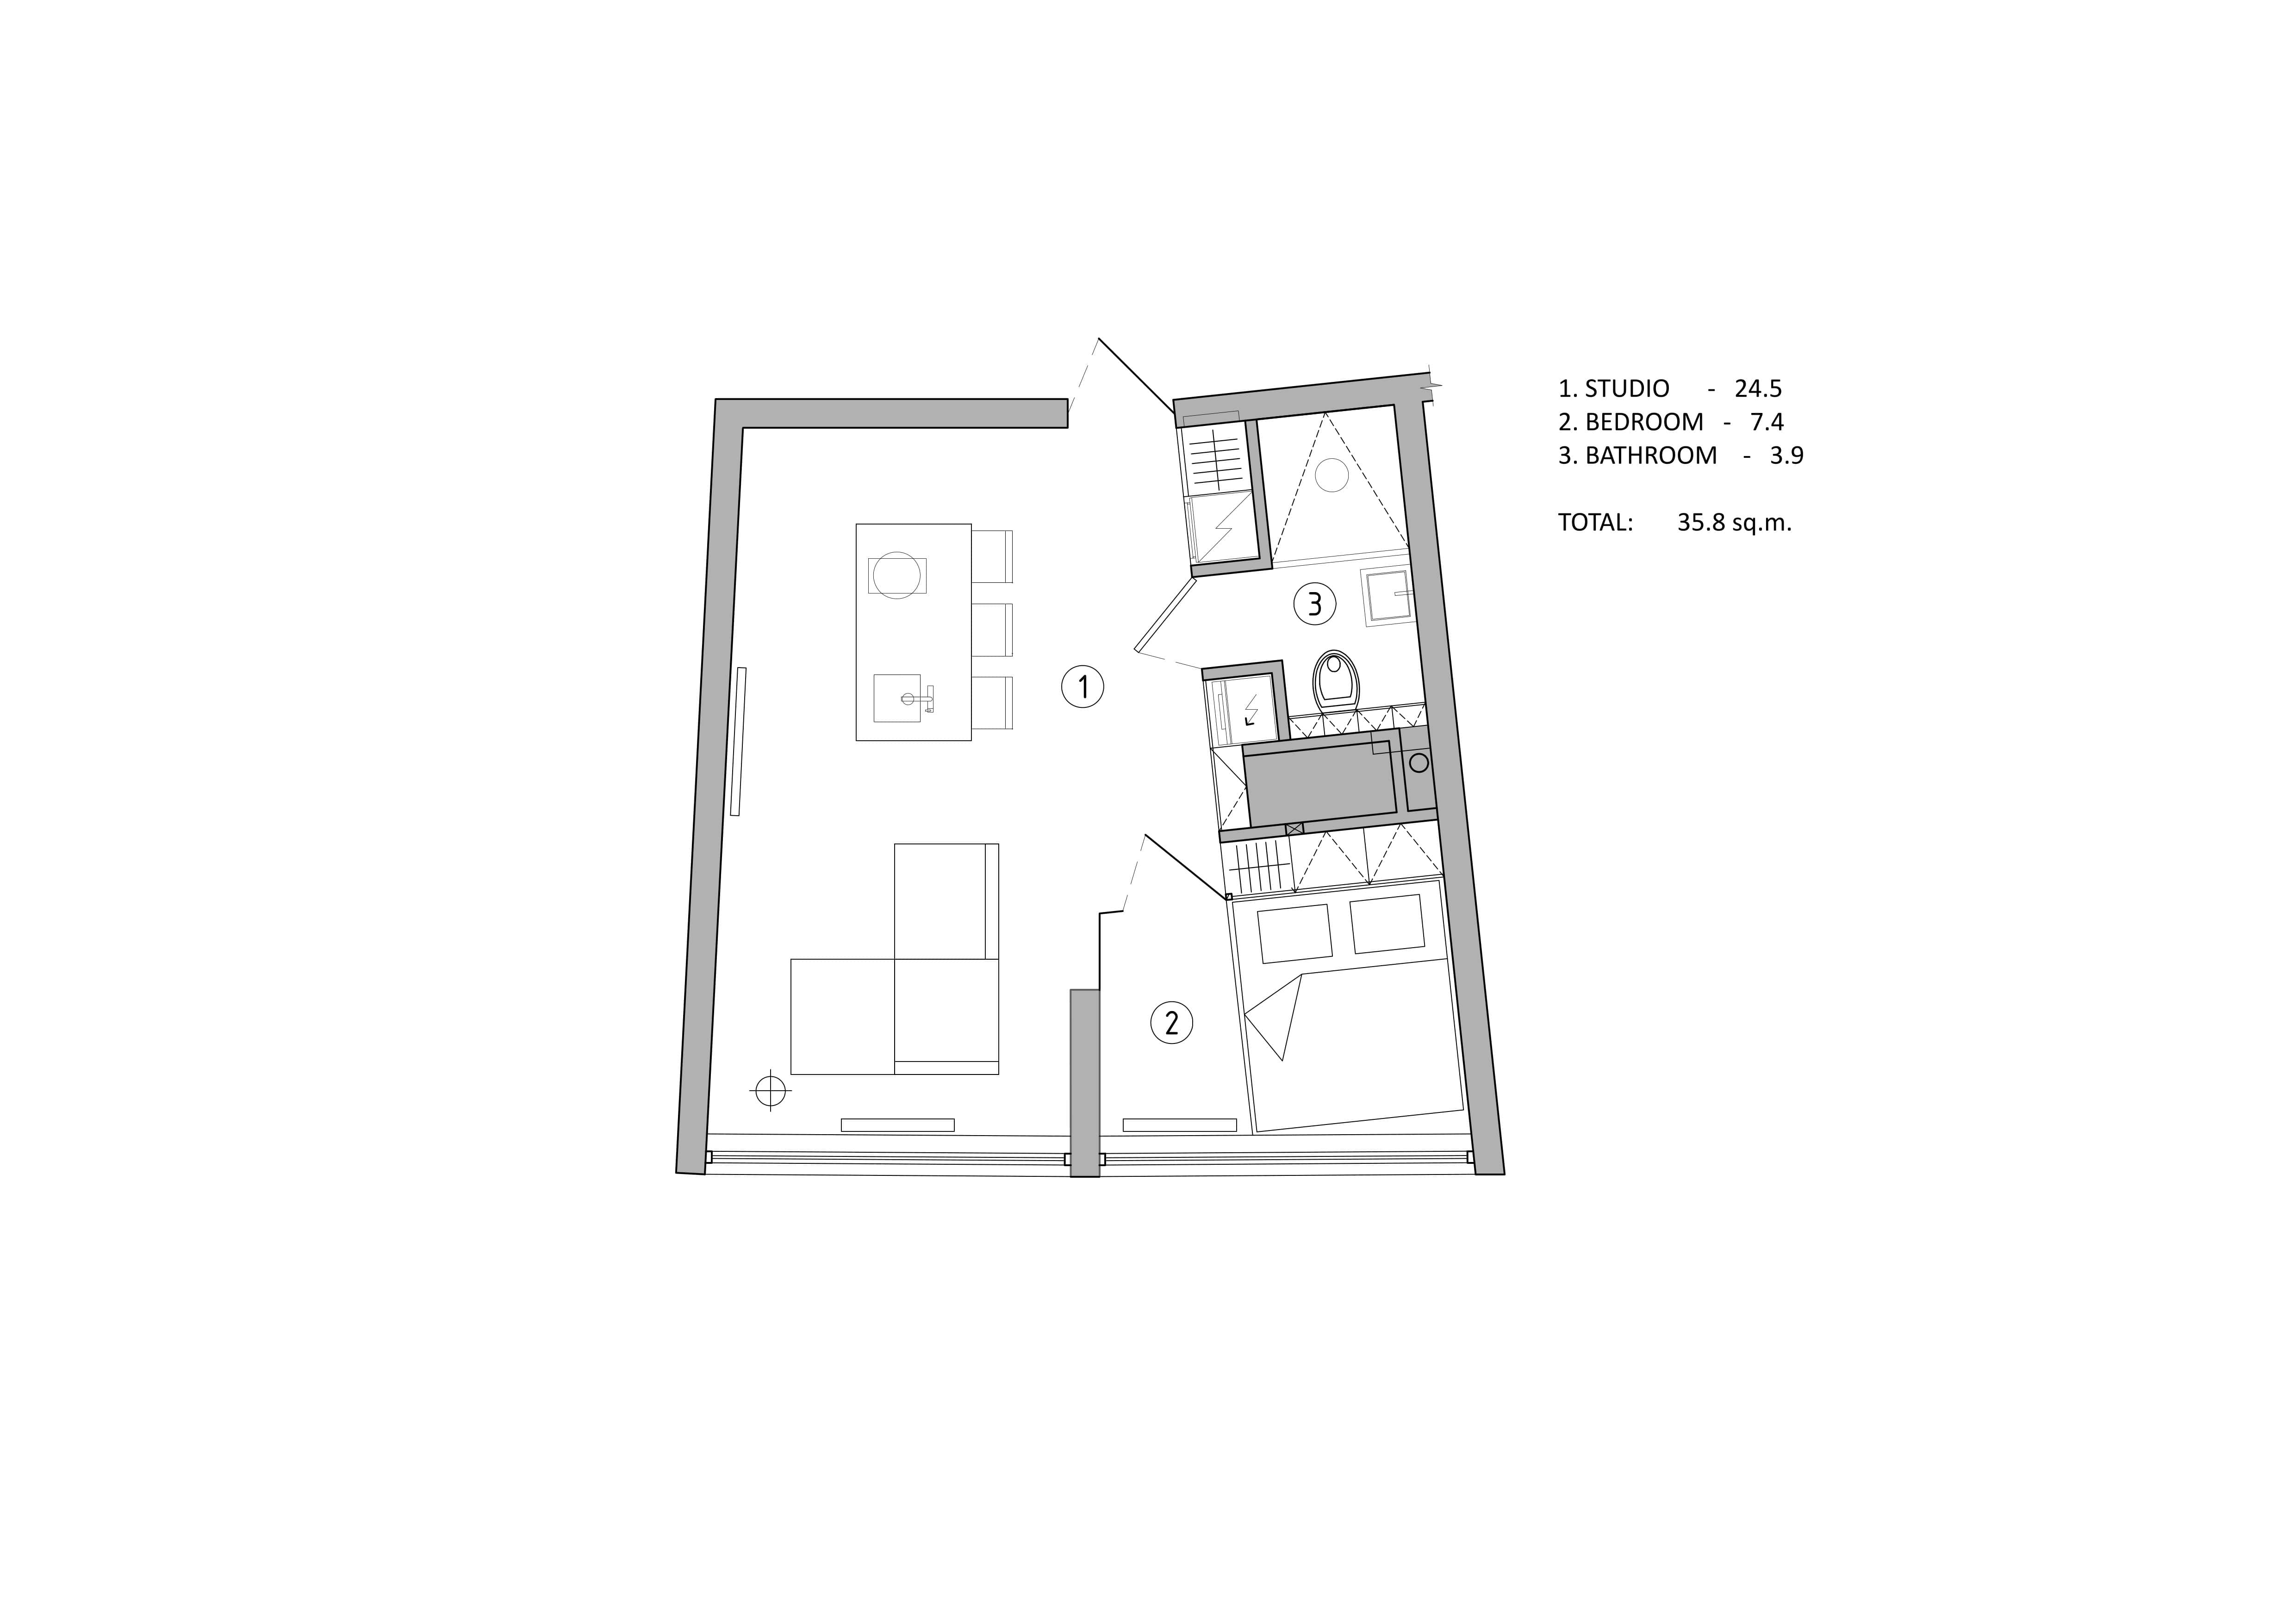 plan of the small apartment